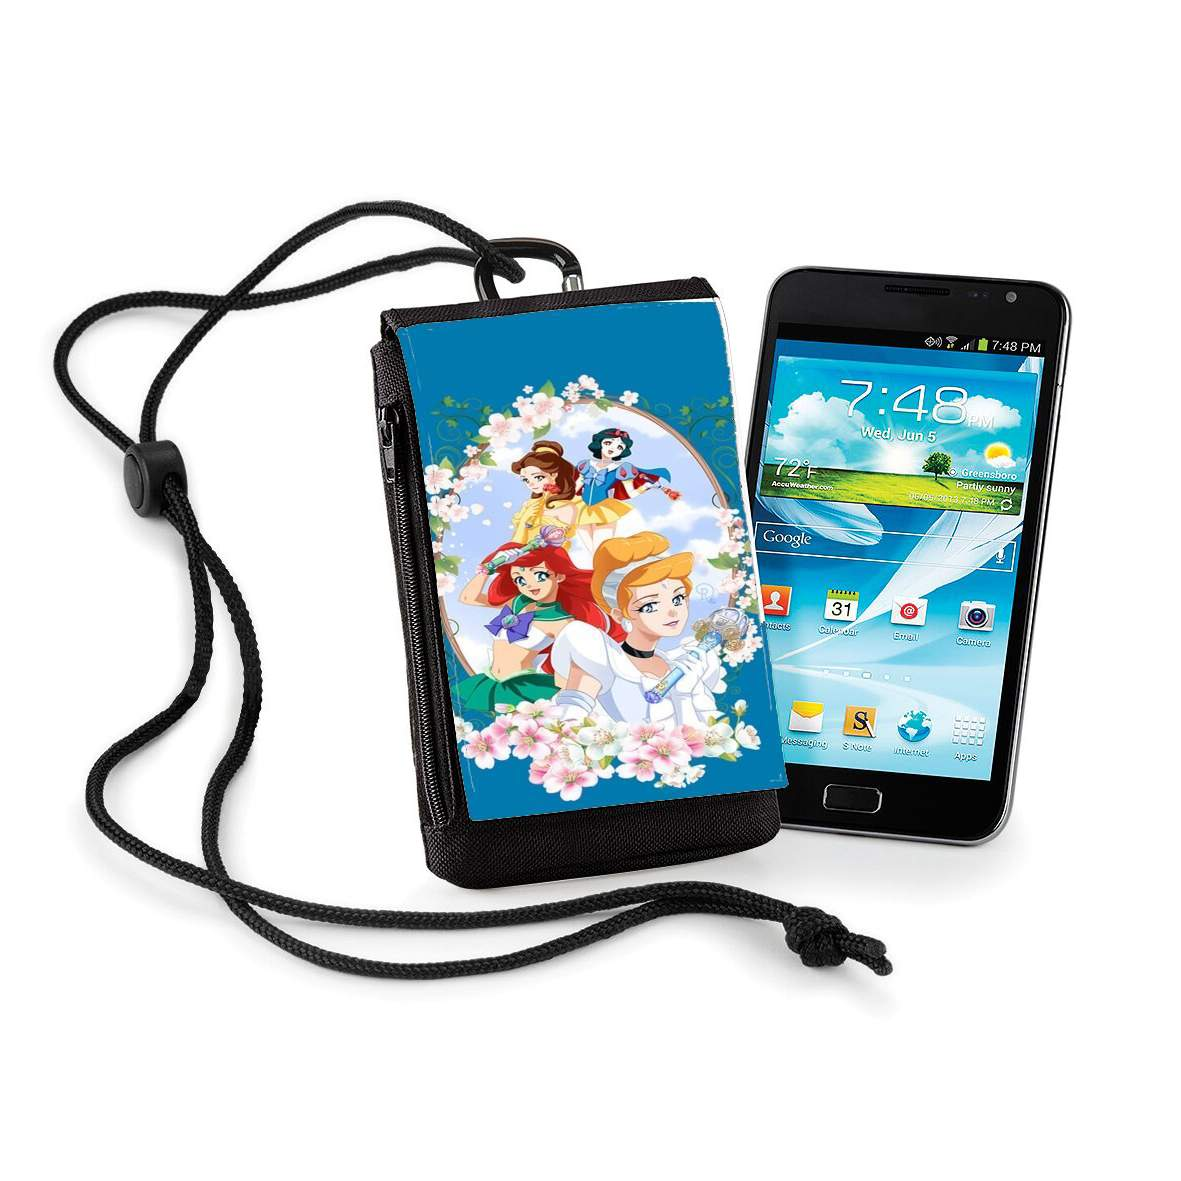 Disney Princess Feat Sailor Moon Alcatel One Touch Idol S